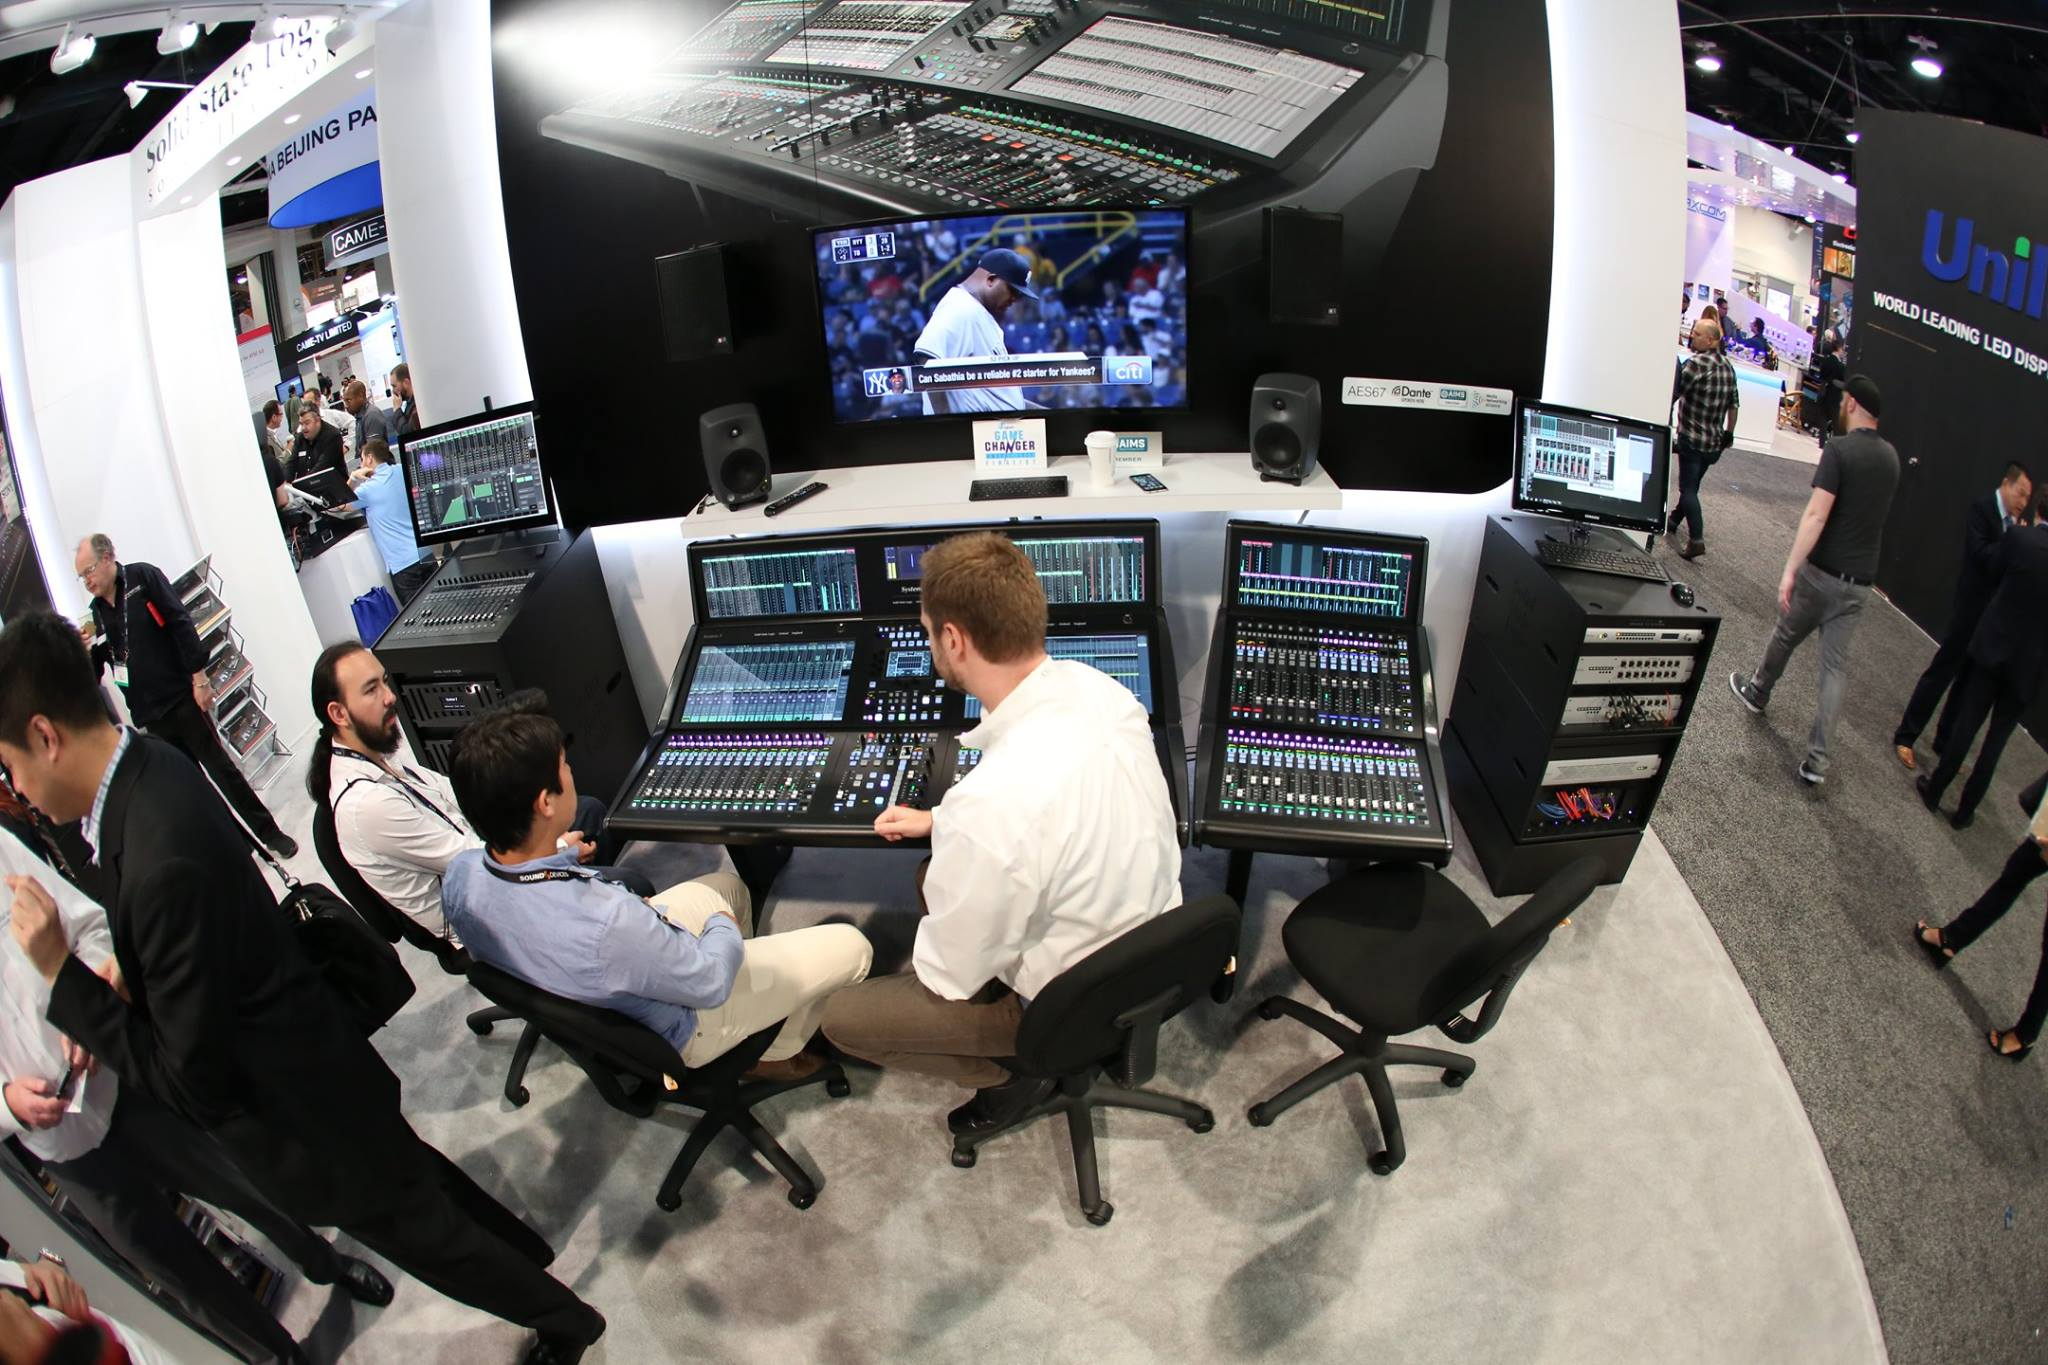 Case Study Preview- The 2018 NAB Show earns 3K+ registrations using Feathr